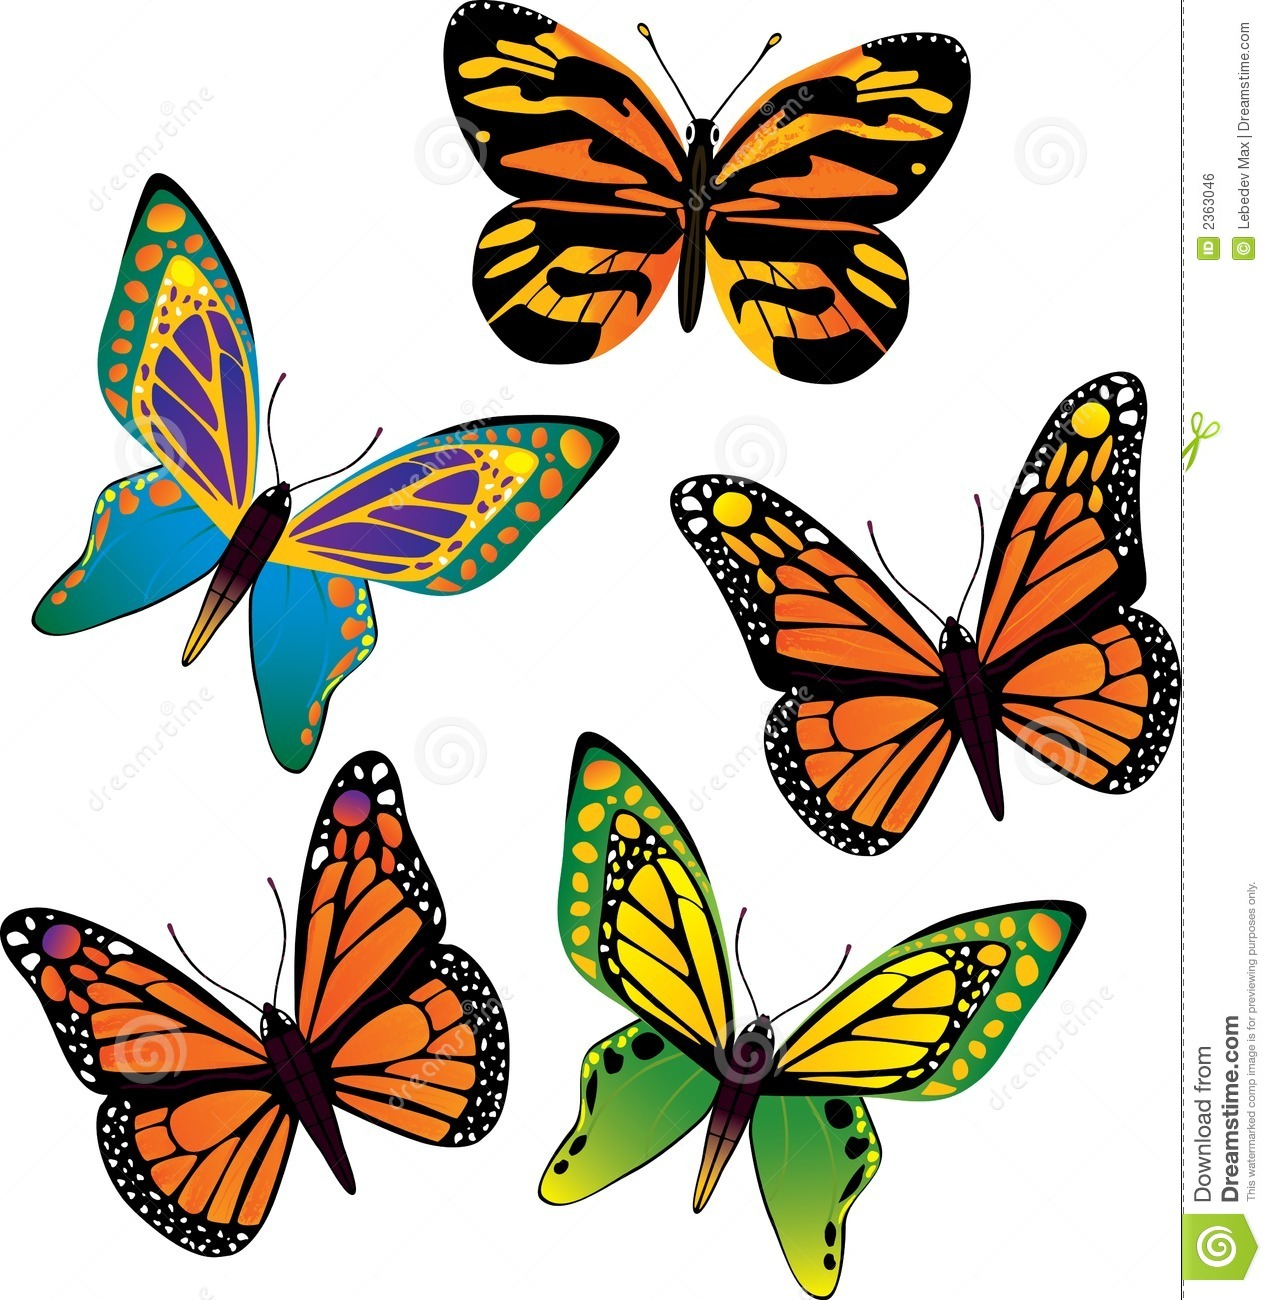 Vector Butterfly Royalty Free Stock Image - Image: 2363046